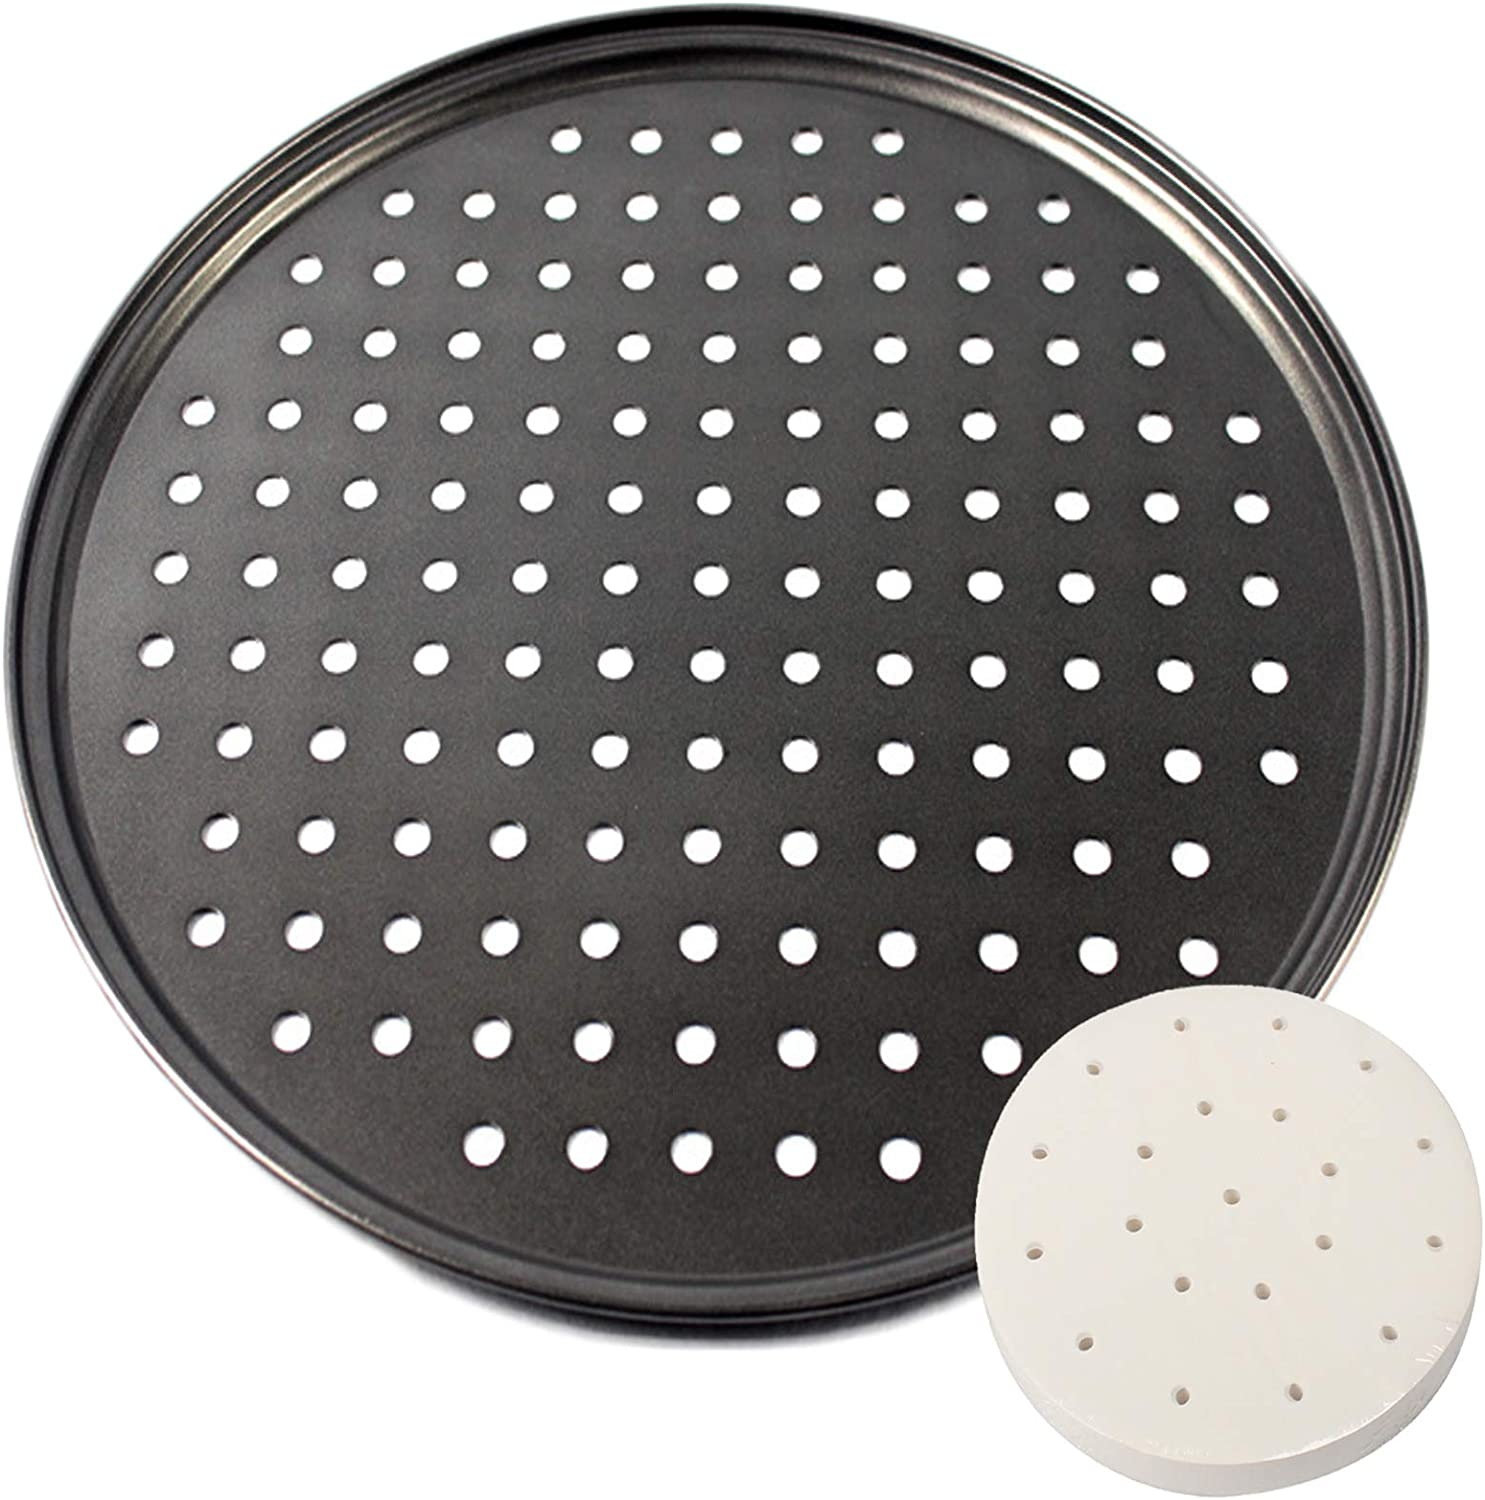 Pizza Pan, Non Stick 12 inch Pizza Pan with Holes, Carbon Steel Perforated Pizza Crisper Pan, Black Round Tray Baking Pan with 11 inch Air Fryer Parchment Paper, Tray Pizza for Home Kitchen Restaurant